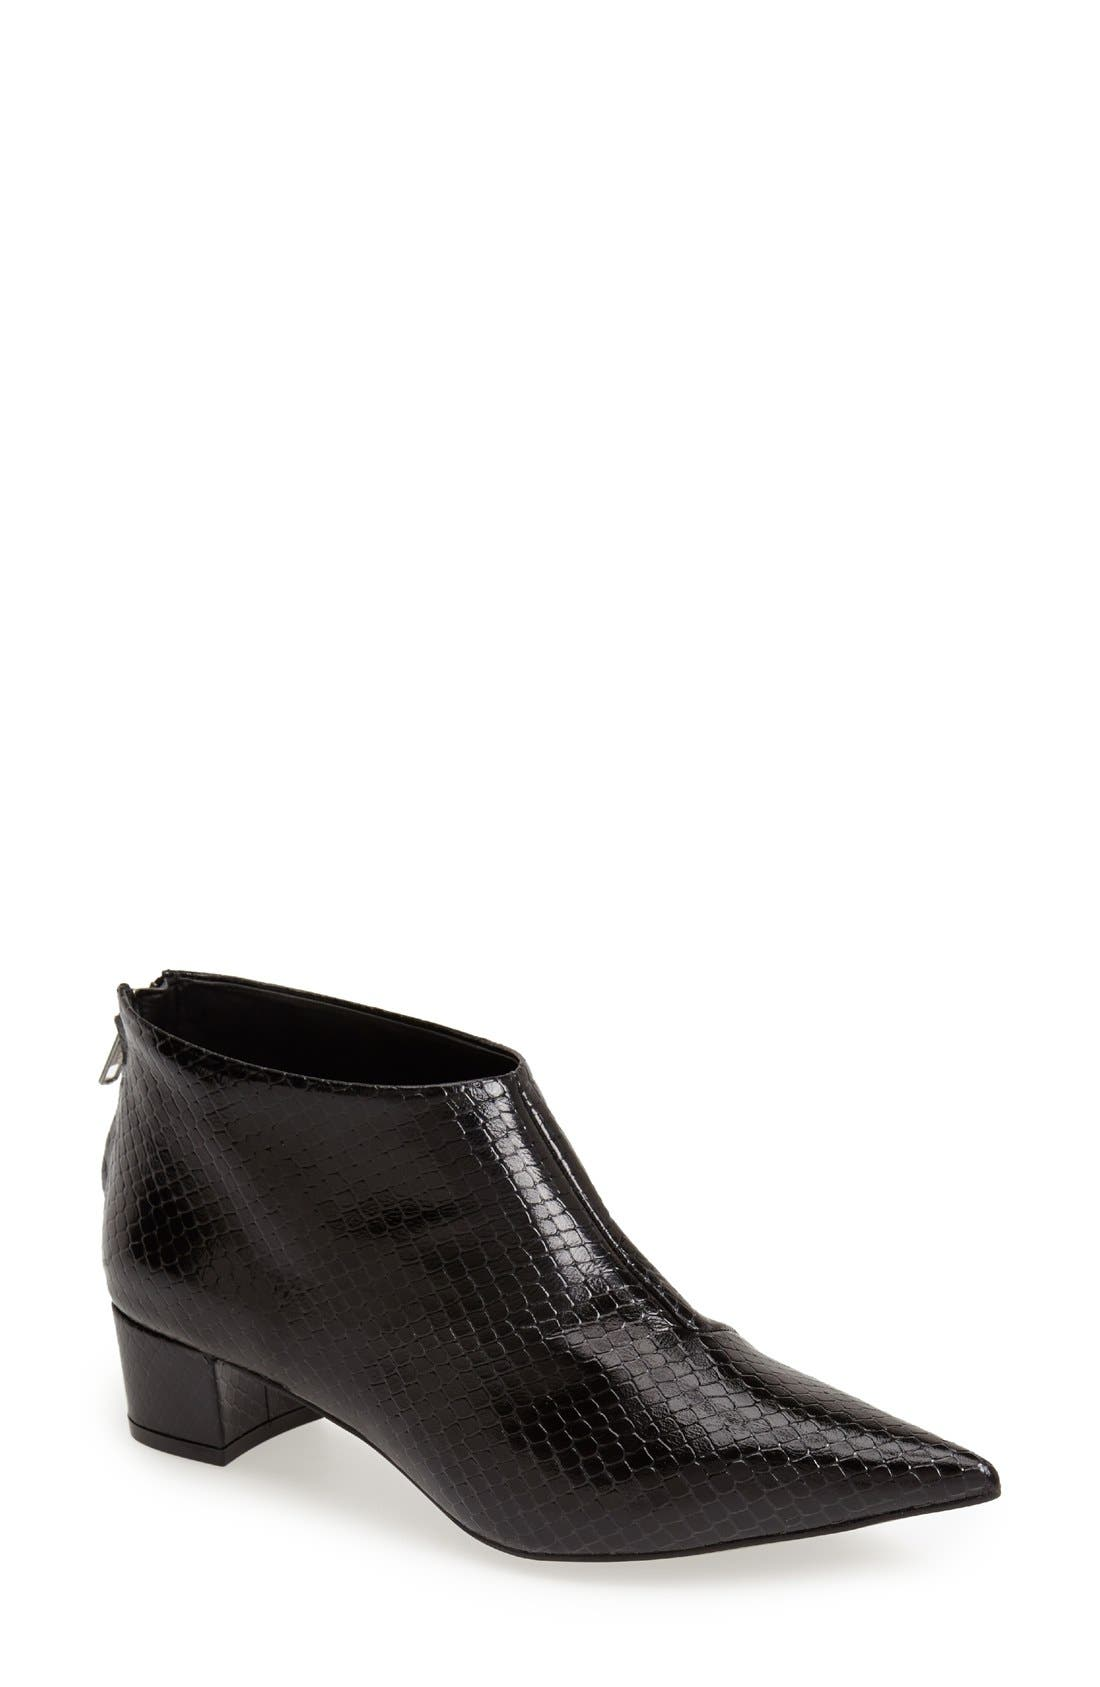 Alternate Image 1 Selected - Topshop 'Ashley' Pointy Toe Leather Ankle Boot (Women)